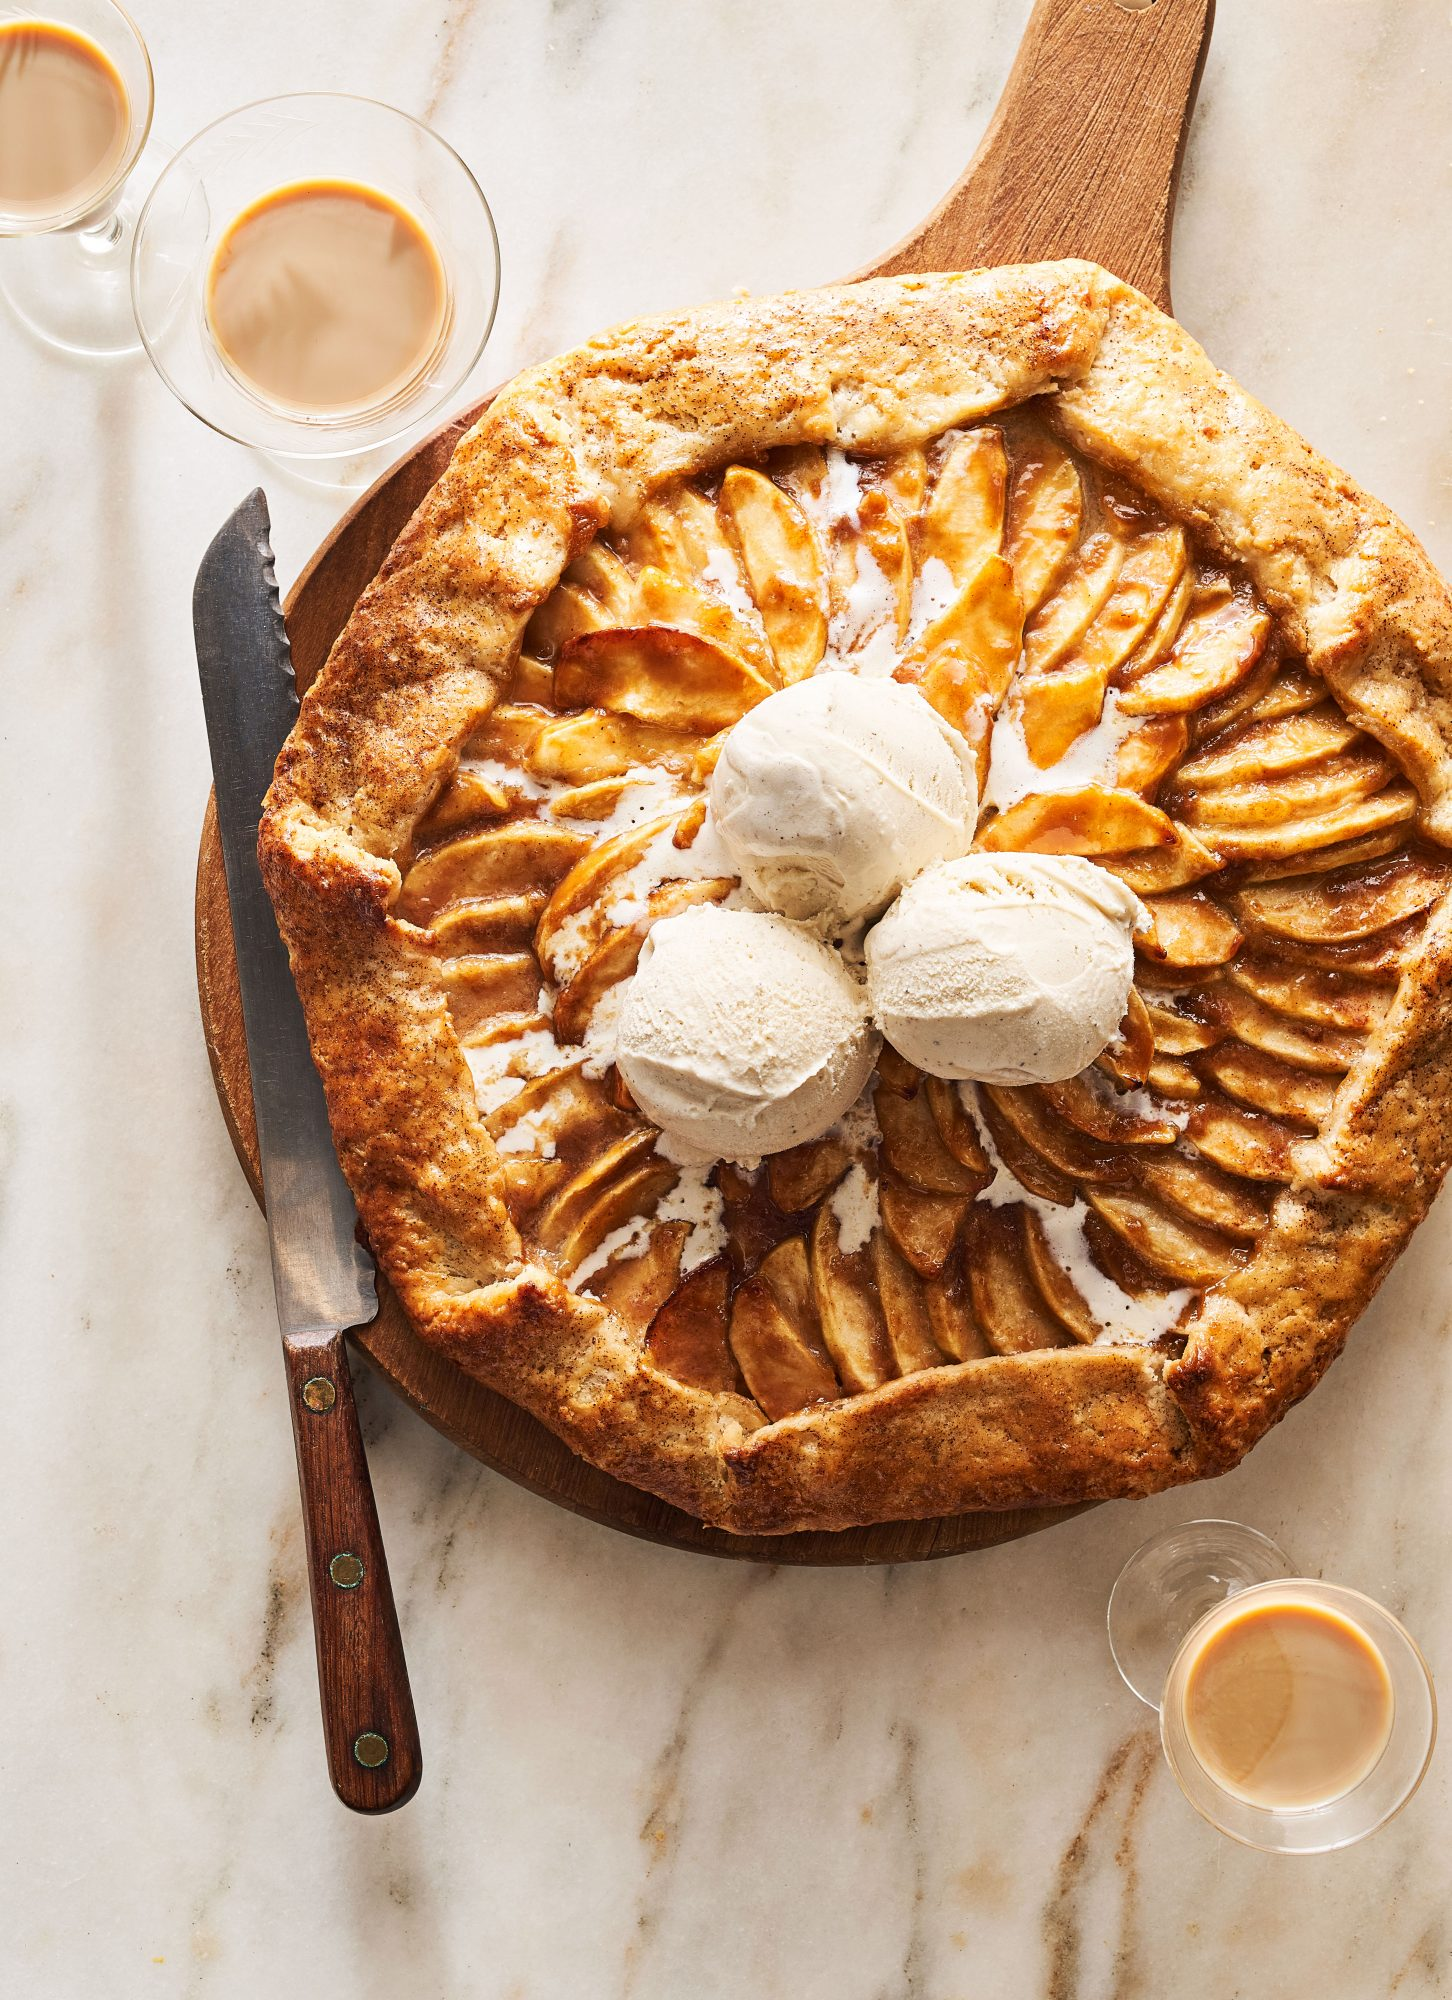 Jerrelle Guy's Salted Irish Cream-Apple Crostata